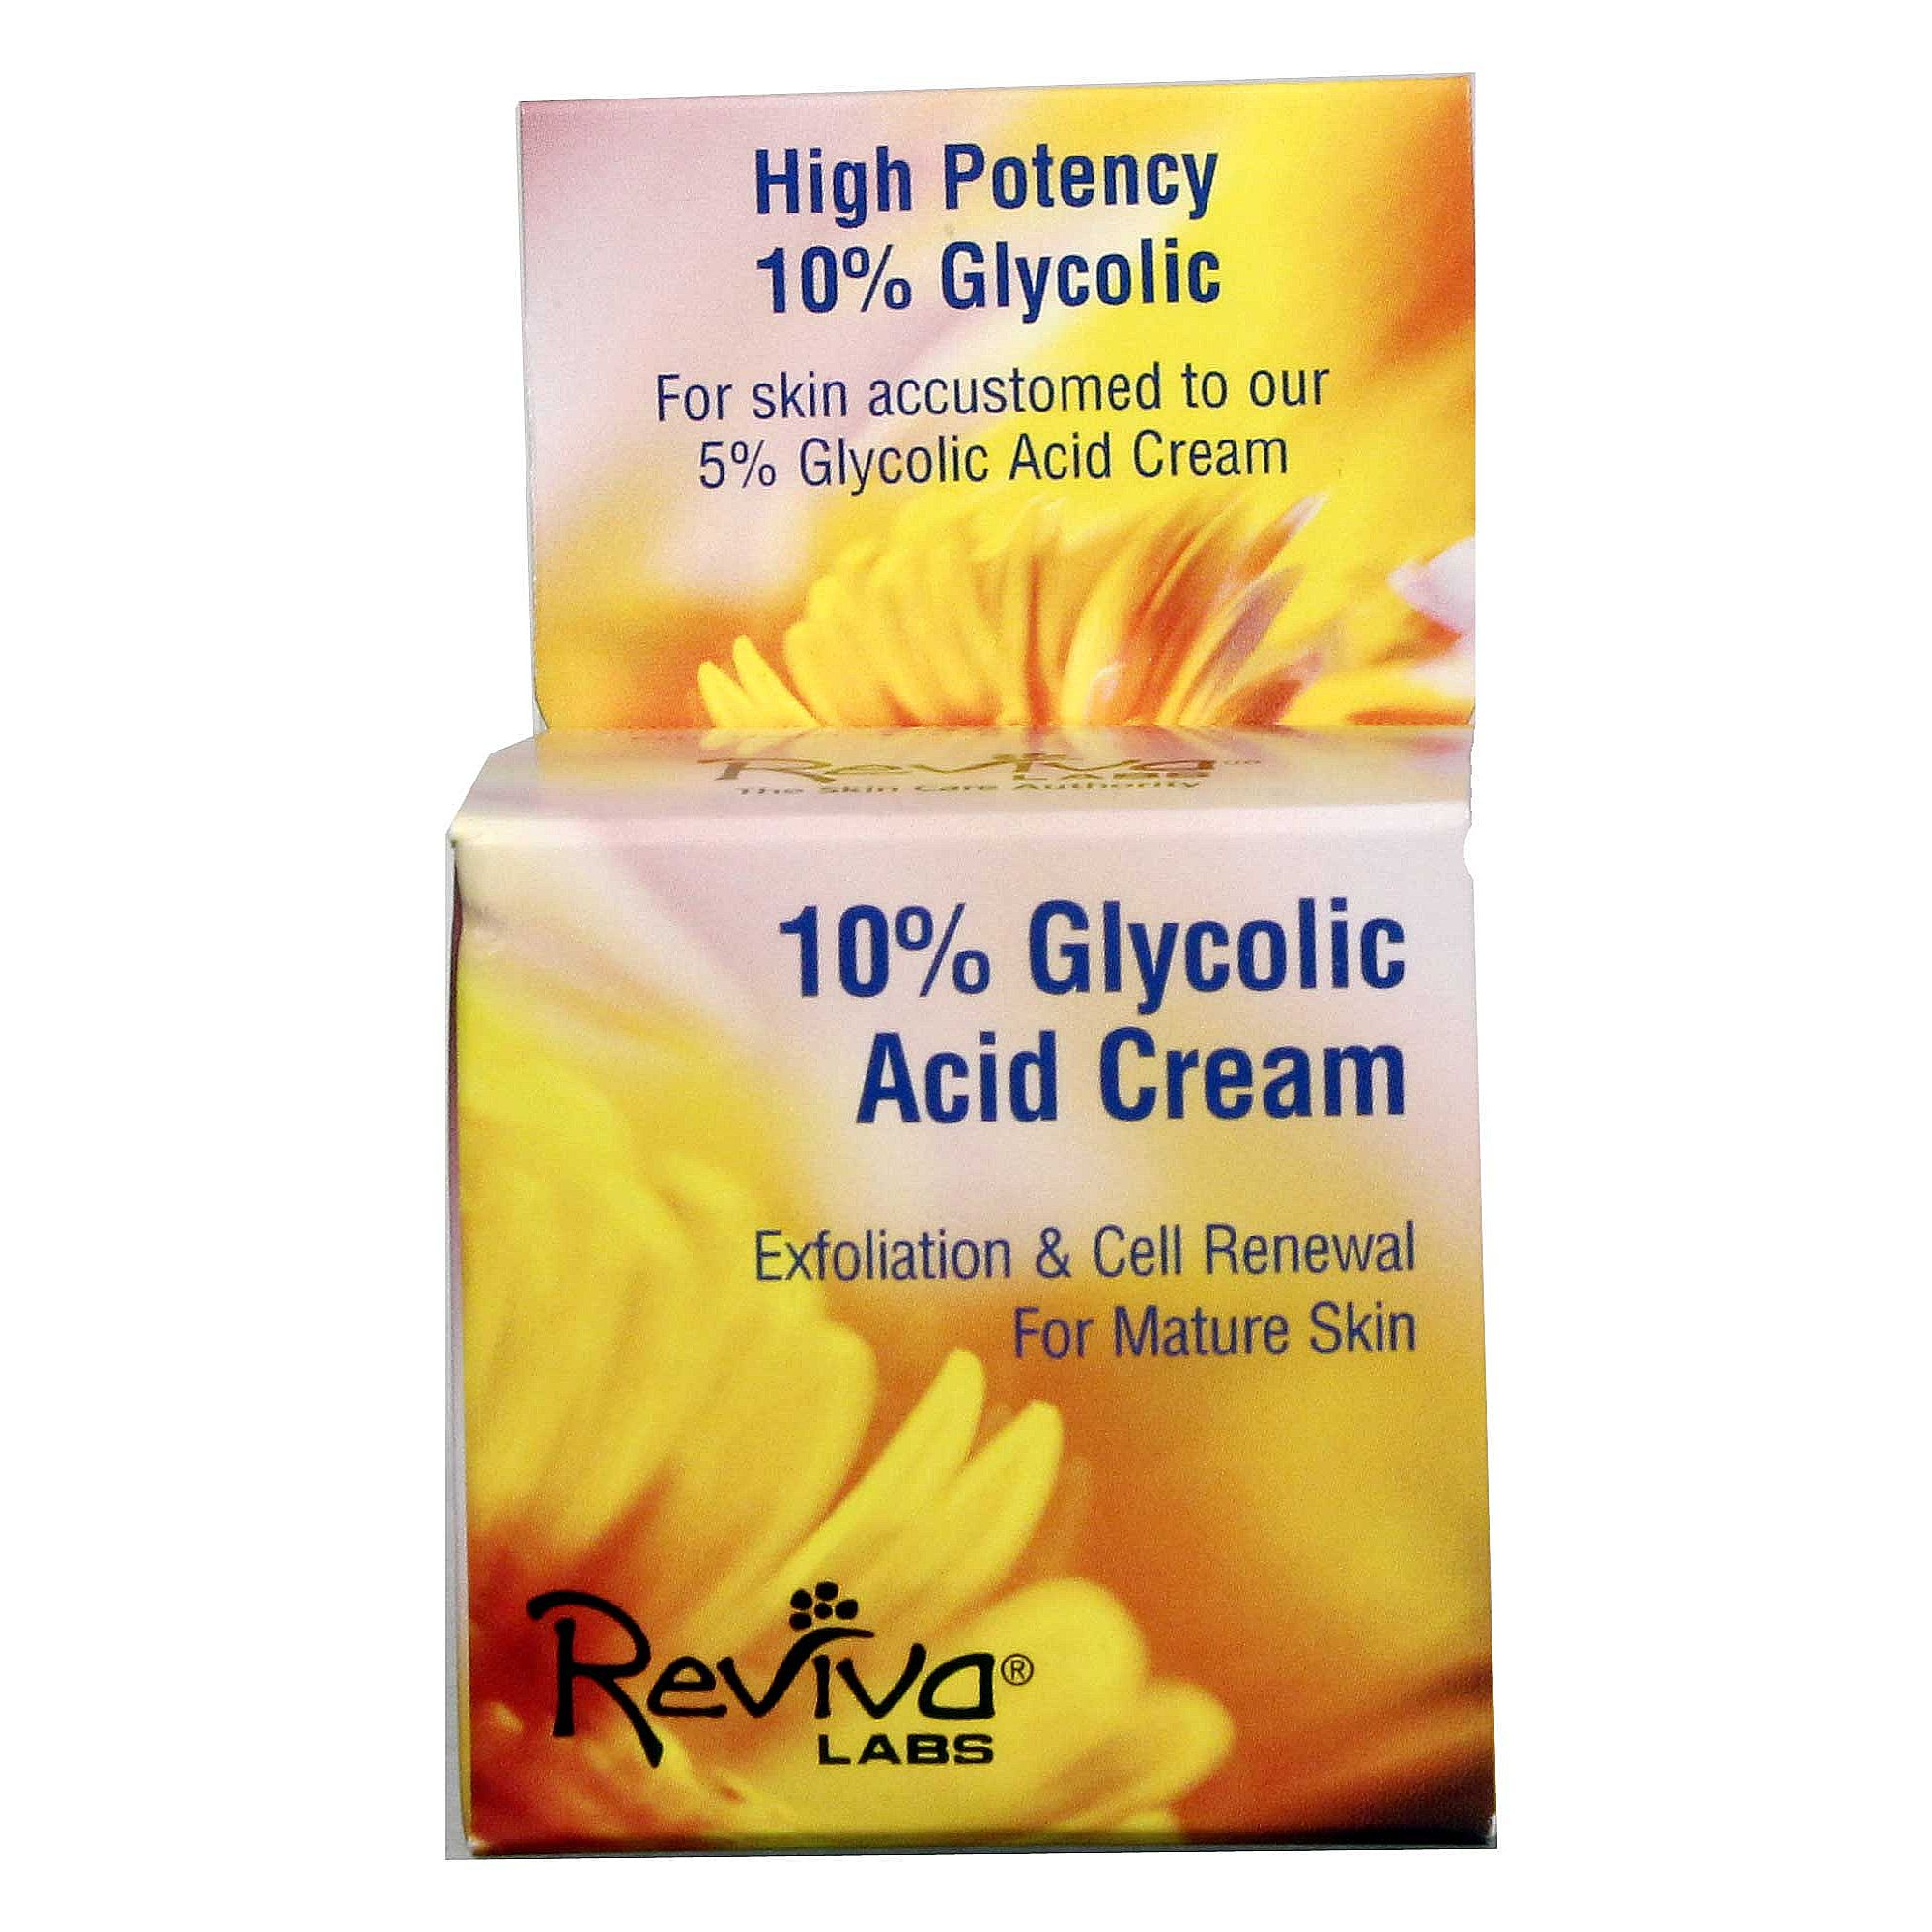 Reviva labs 5 glycolic acid cream review